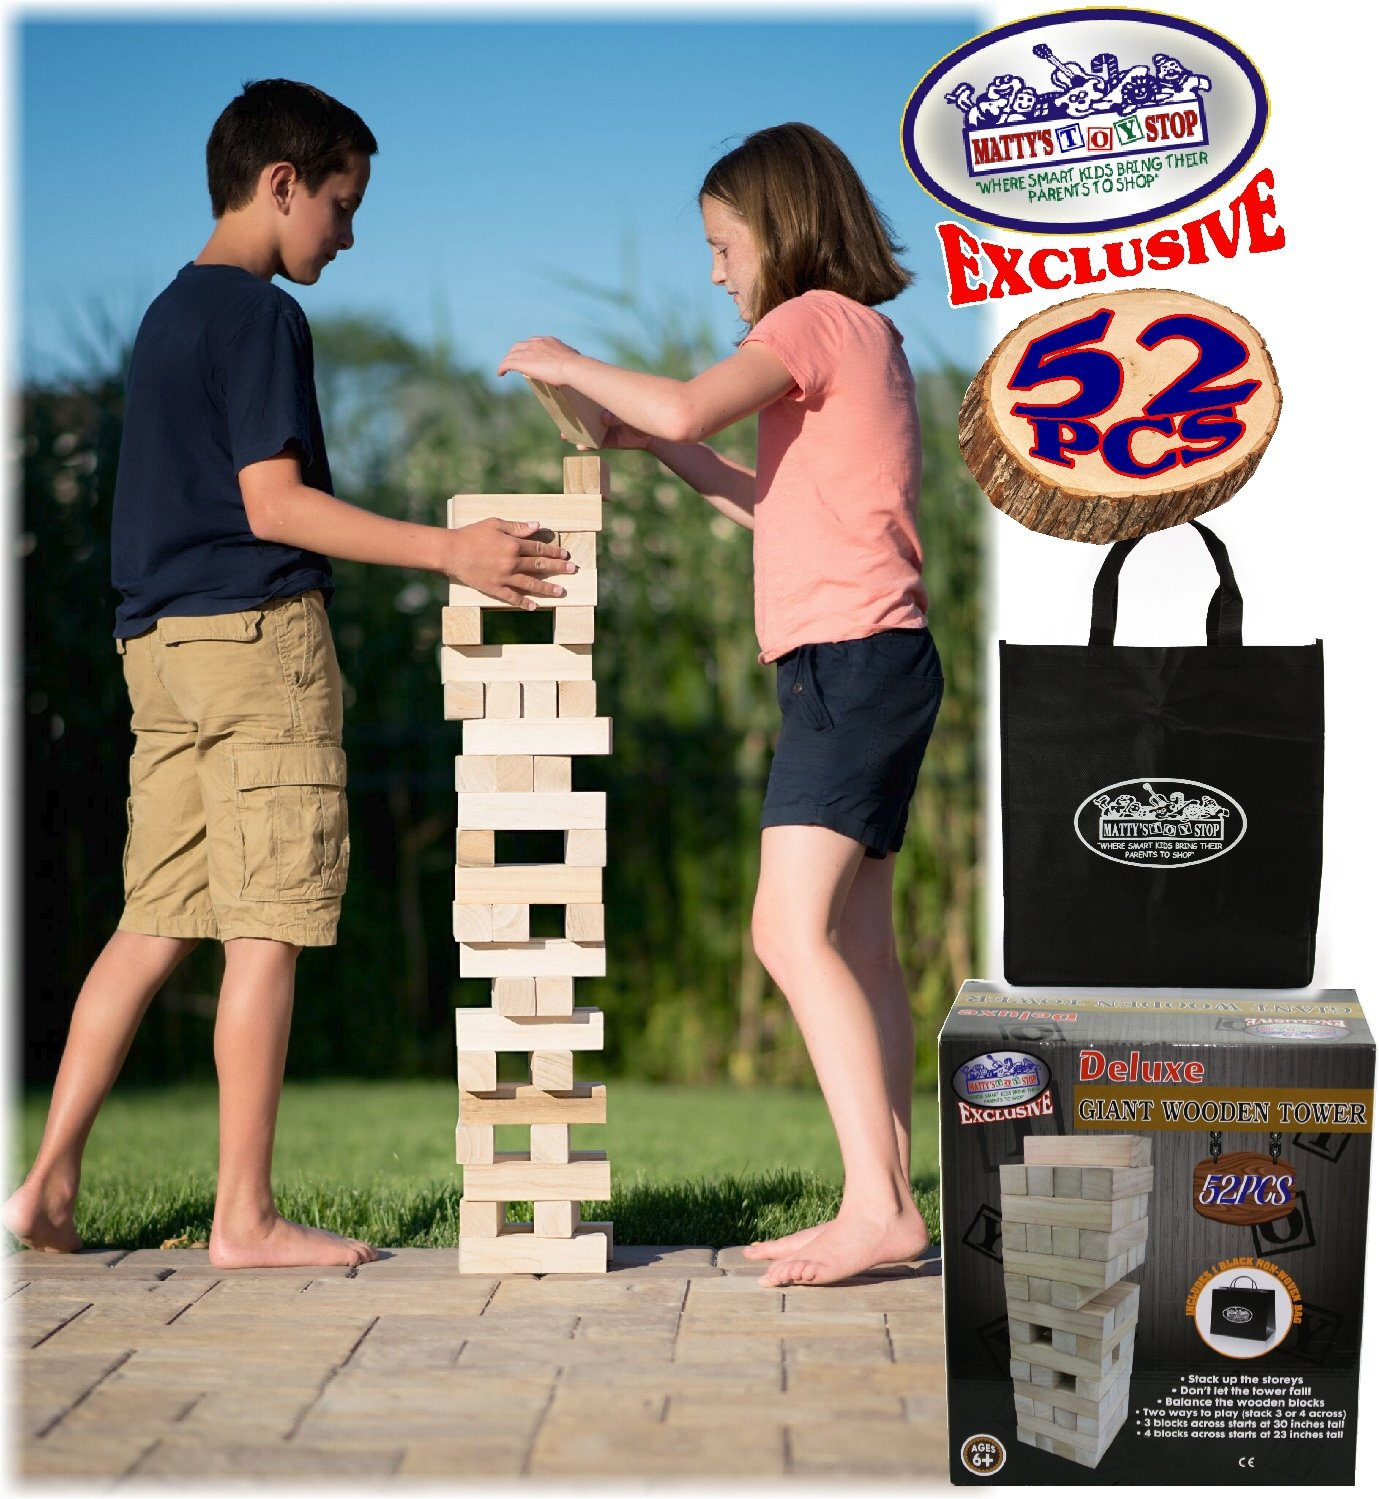 Matty's Toy Stop Giant Wooden Tower Deluxe Stacking Game with Storage Bag (52 Pieces) 2 Ways to Play (Starts at 23'' or 30'')